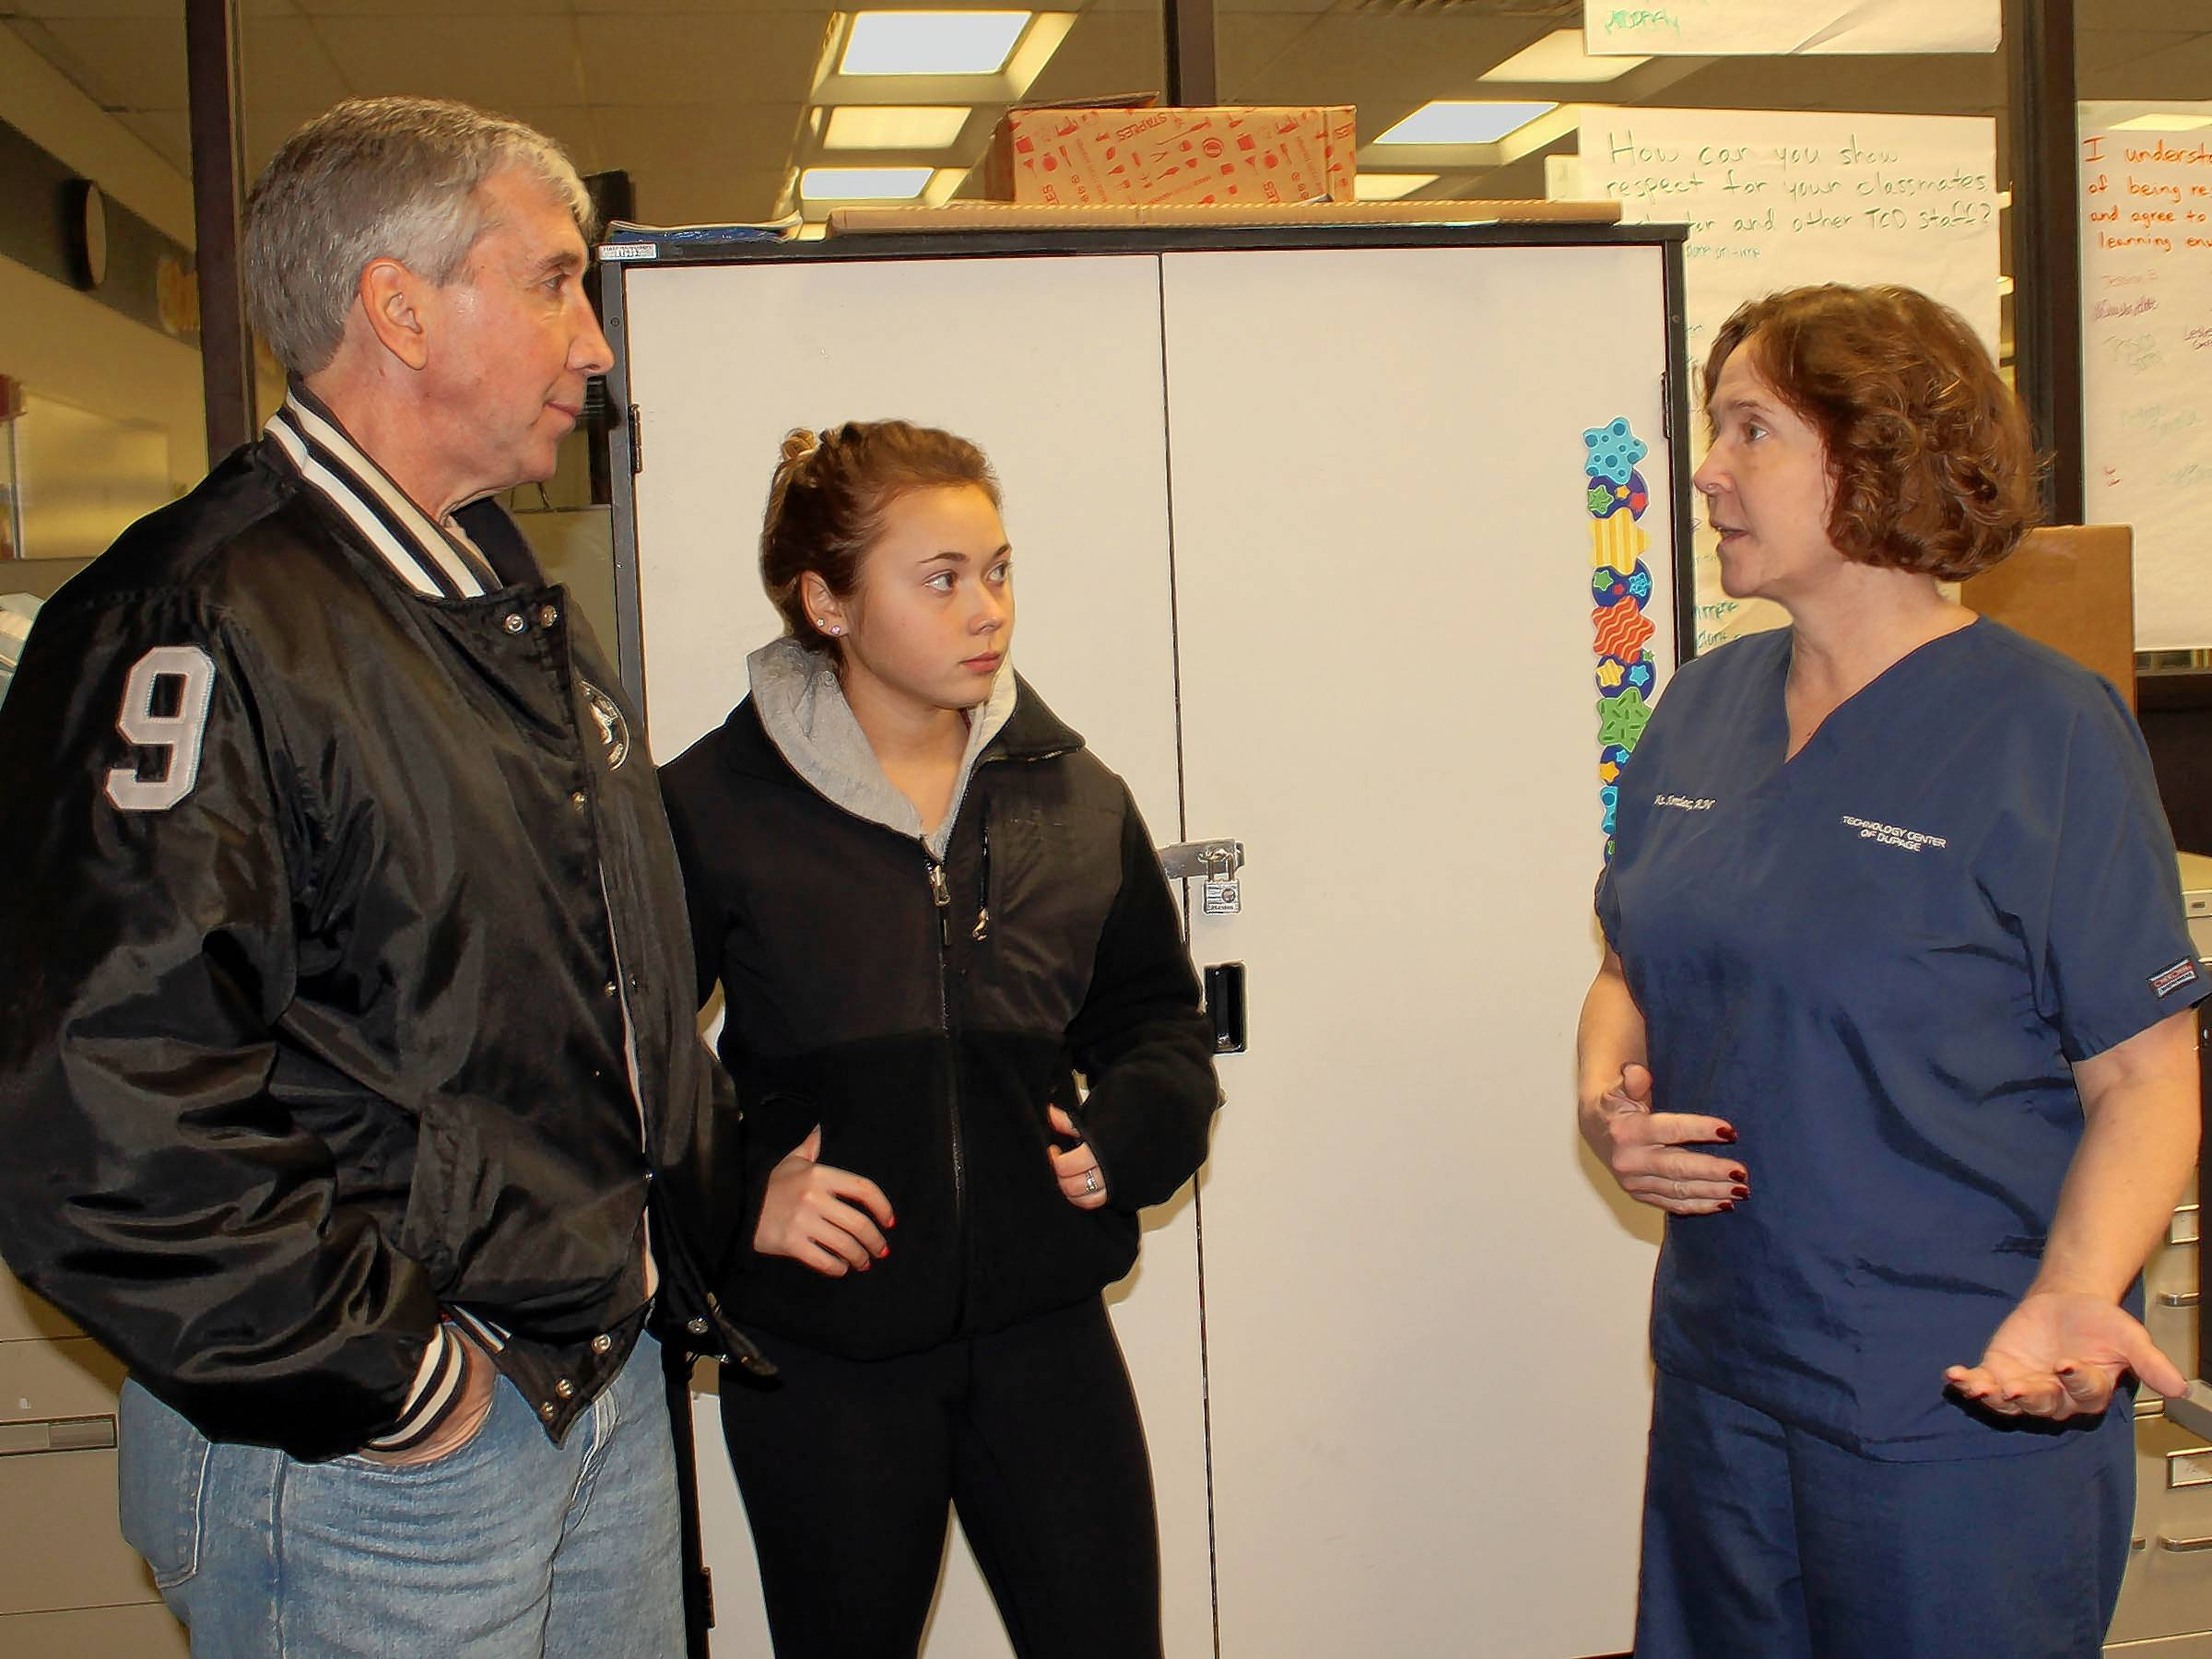 Skip Perillo, left, a 1979 TCD alumnus, accompanied his daughter Jennifer on a recent visit to Technology Center of DuPage to check out the Healthcare Foundations program. They met Marie Kmiec, right, a registered nurse and TCD instructor. Jennifer, a junior at Lake Park High School, plans to enroll in the elective program during her senior year, making her a second generation TCD student.